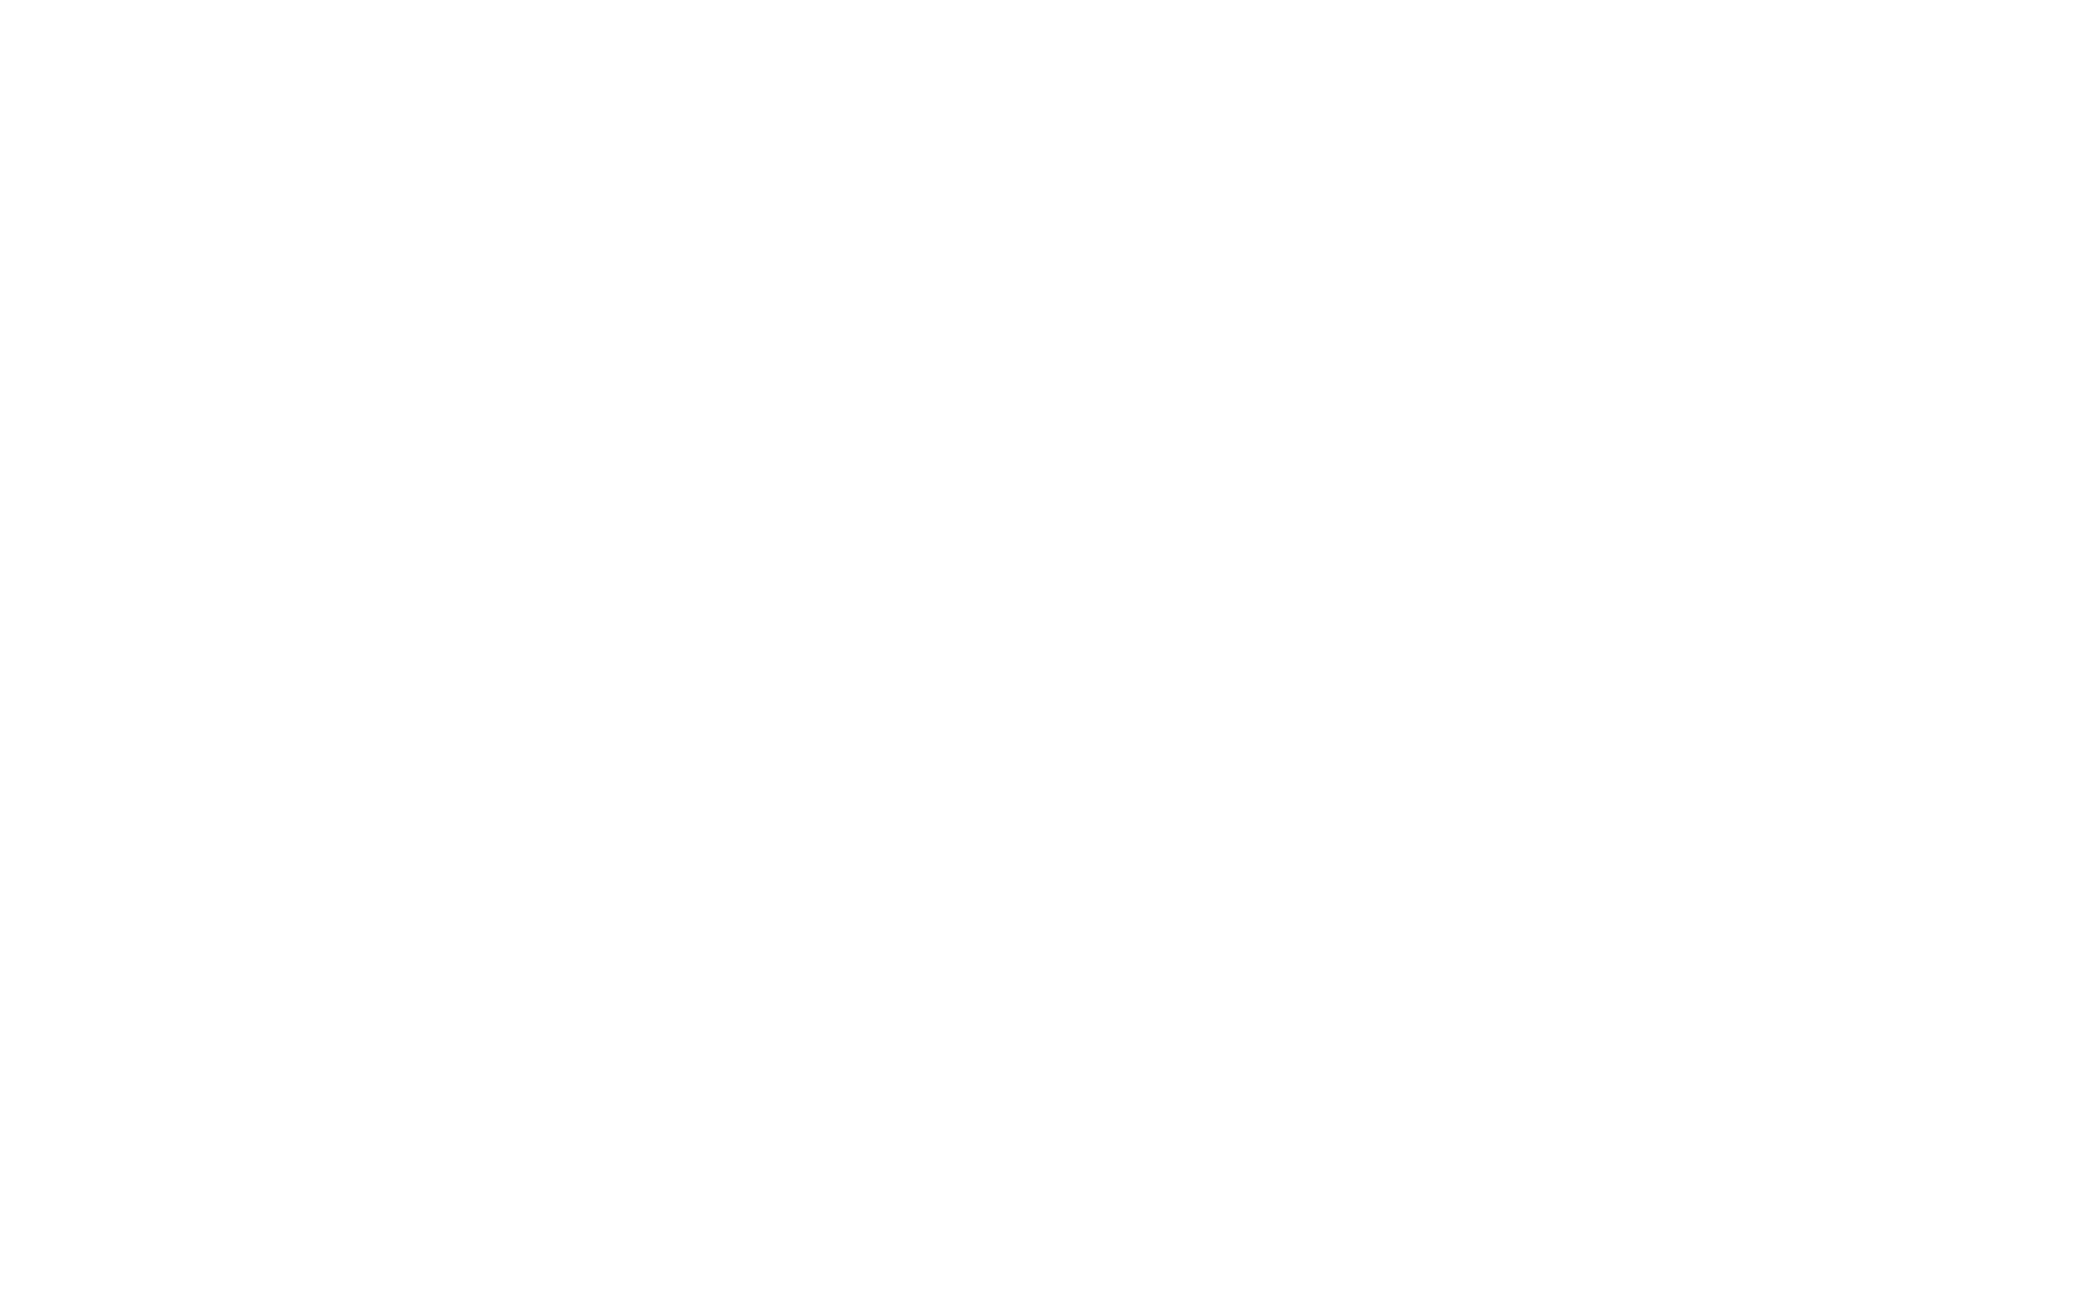 Designing Alerts for Patients